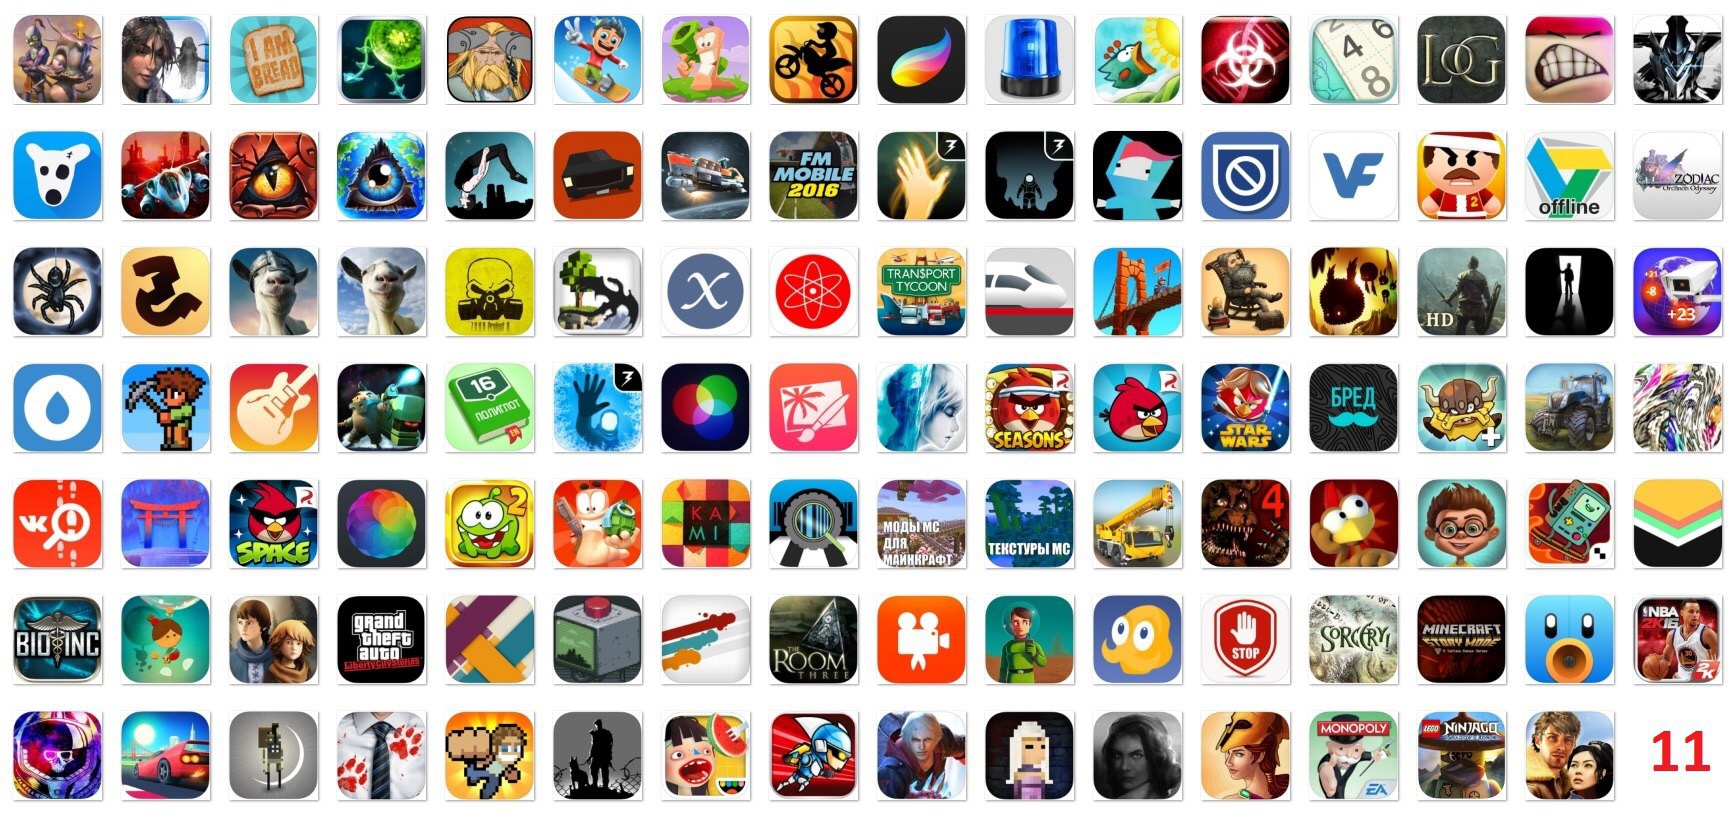 App Store Account with 80 Games iOS 8/9/10/11/12 2019